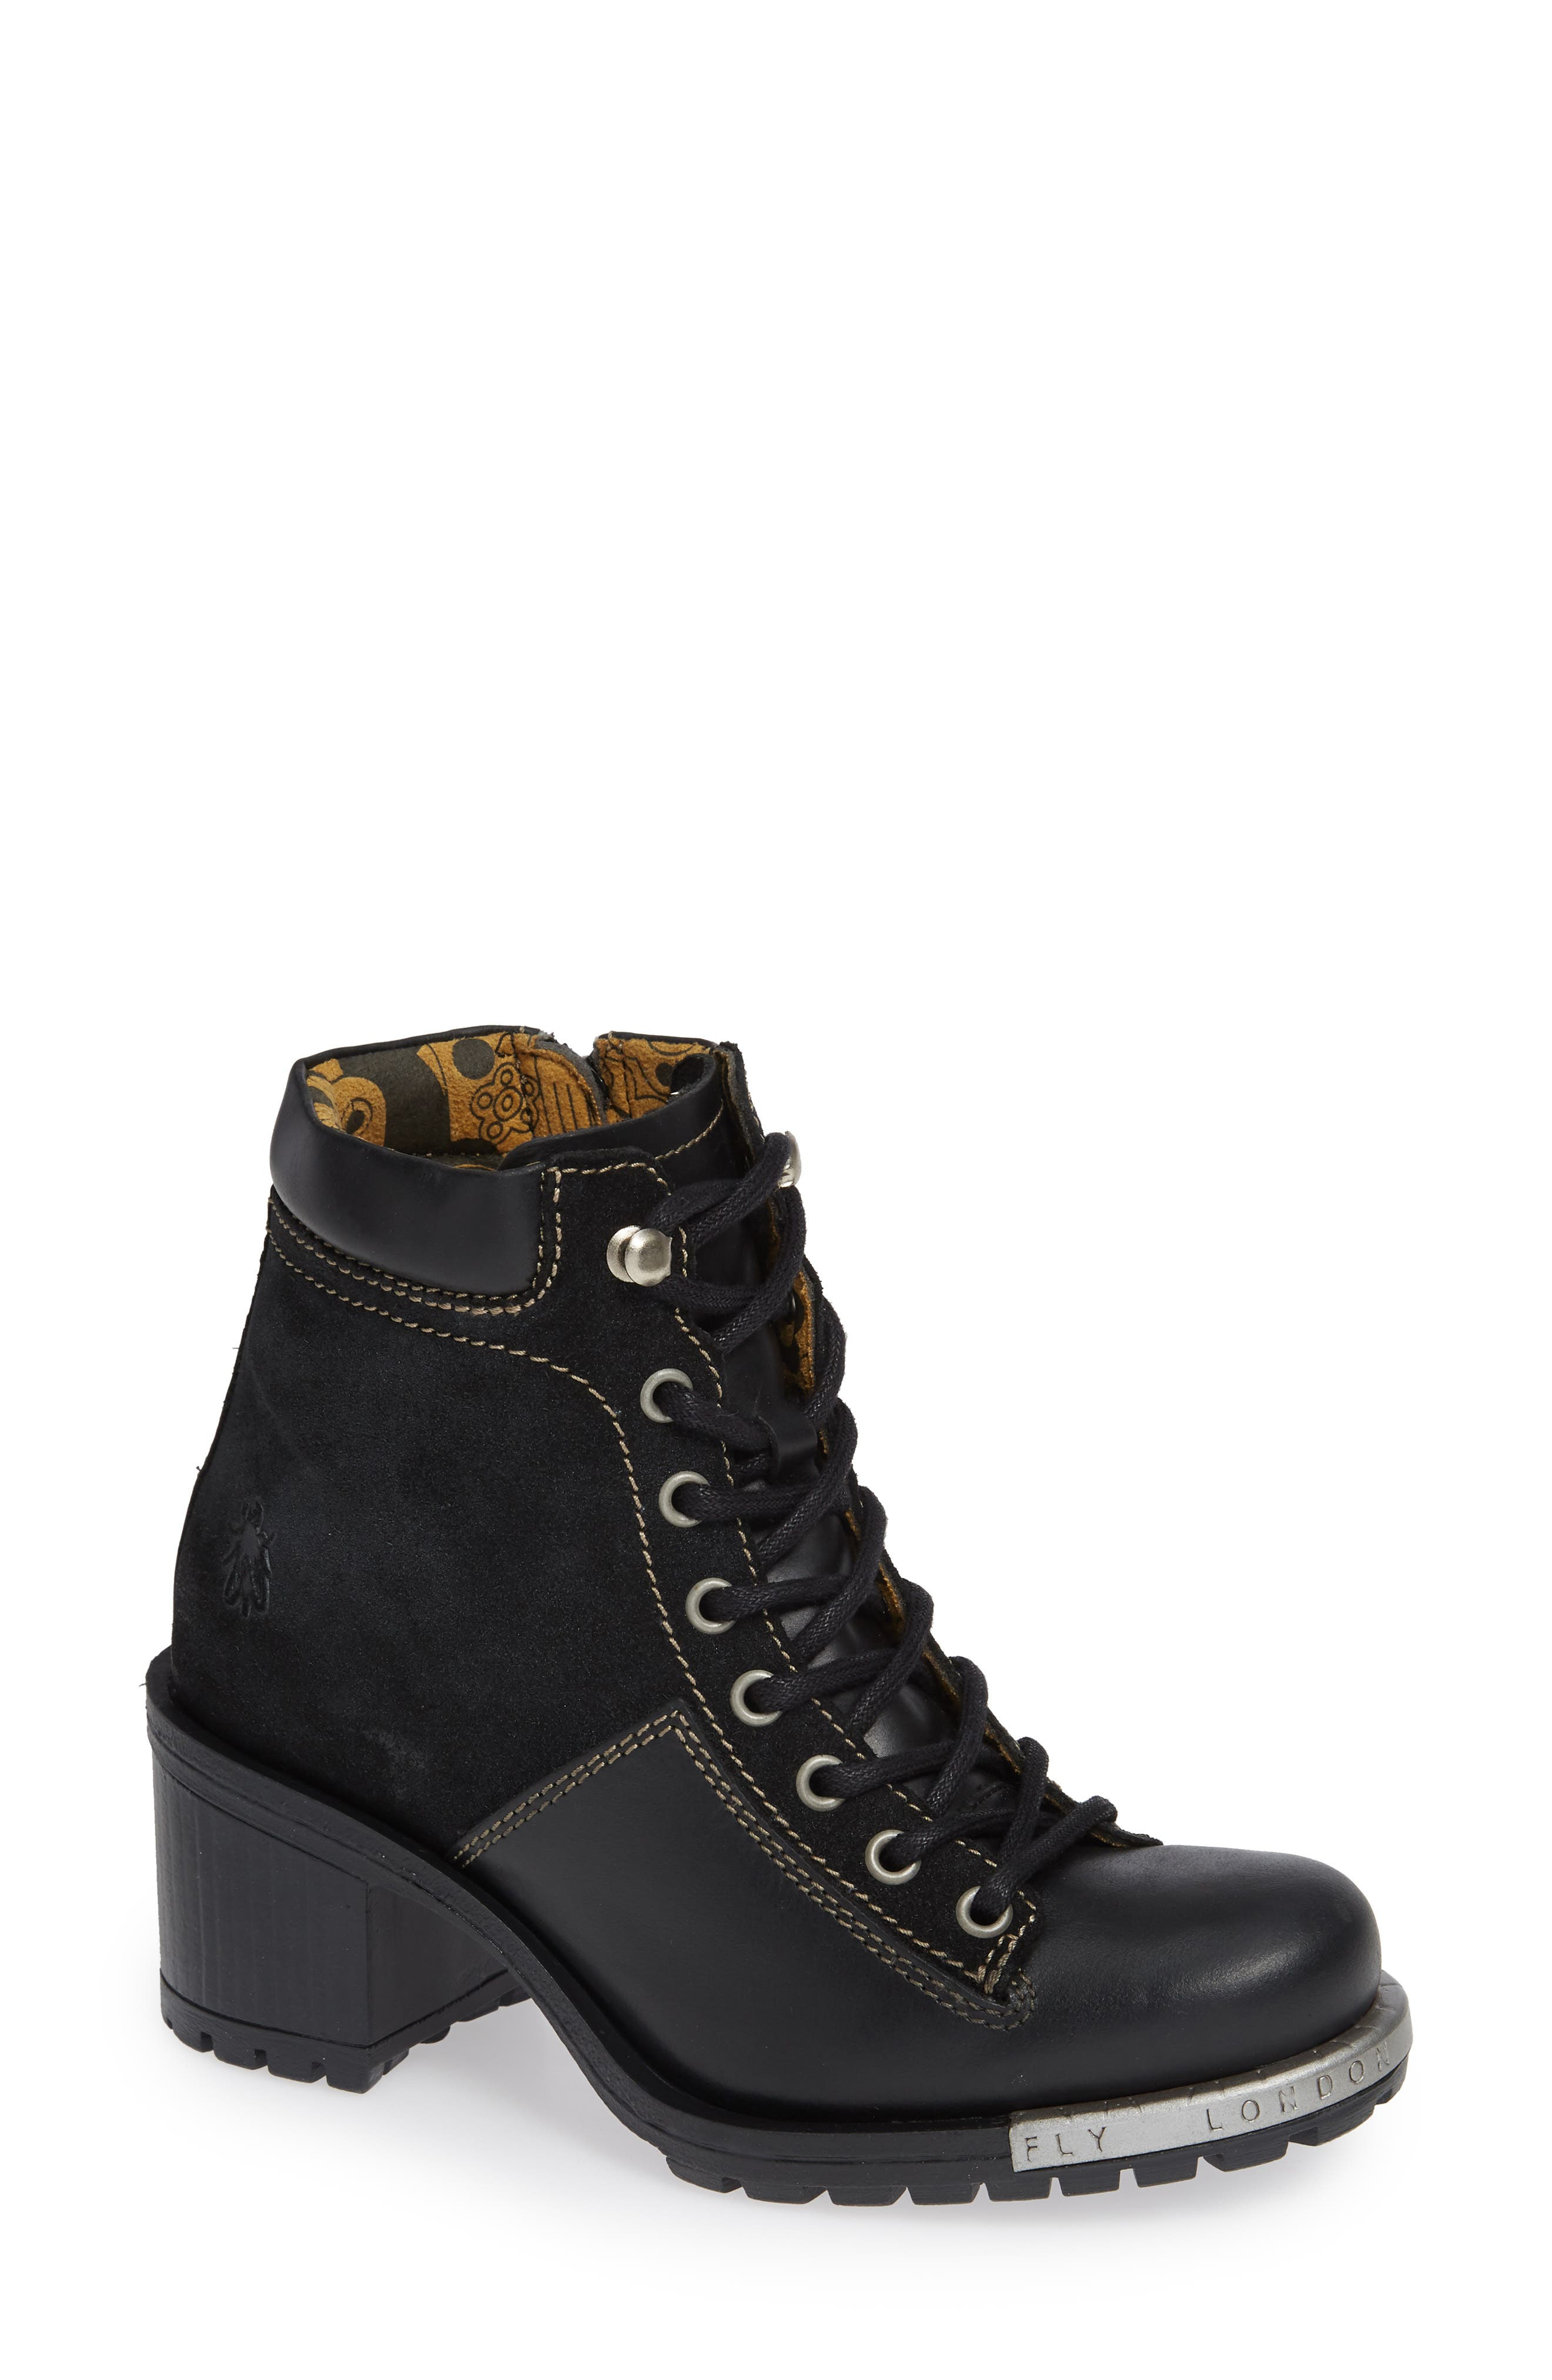 'Leal' Boot,                             Main thumbnail 1, color,                             BLACK/ ANTHRACITE